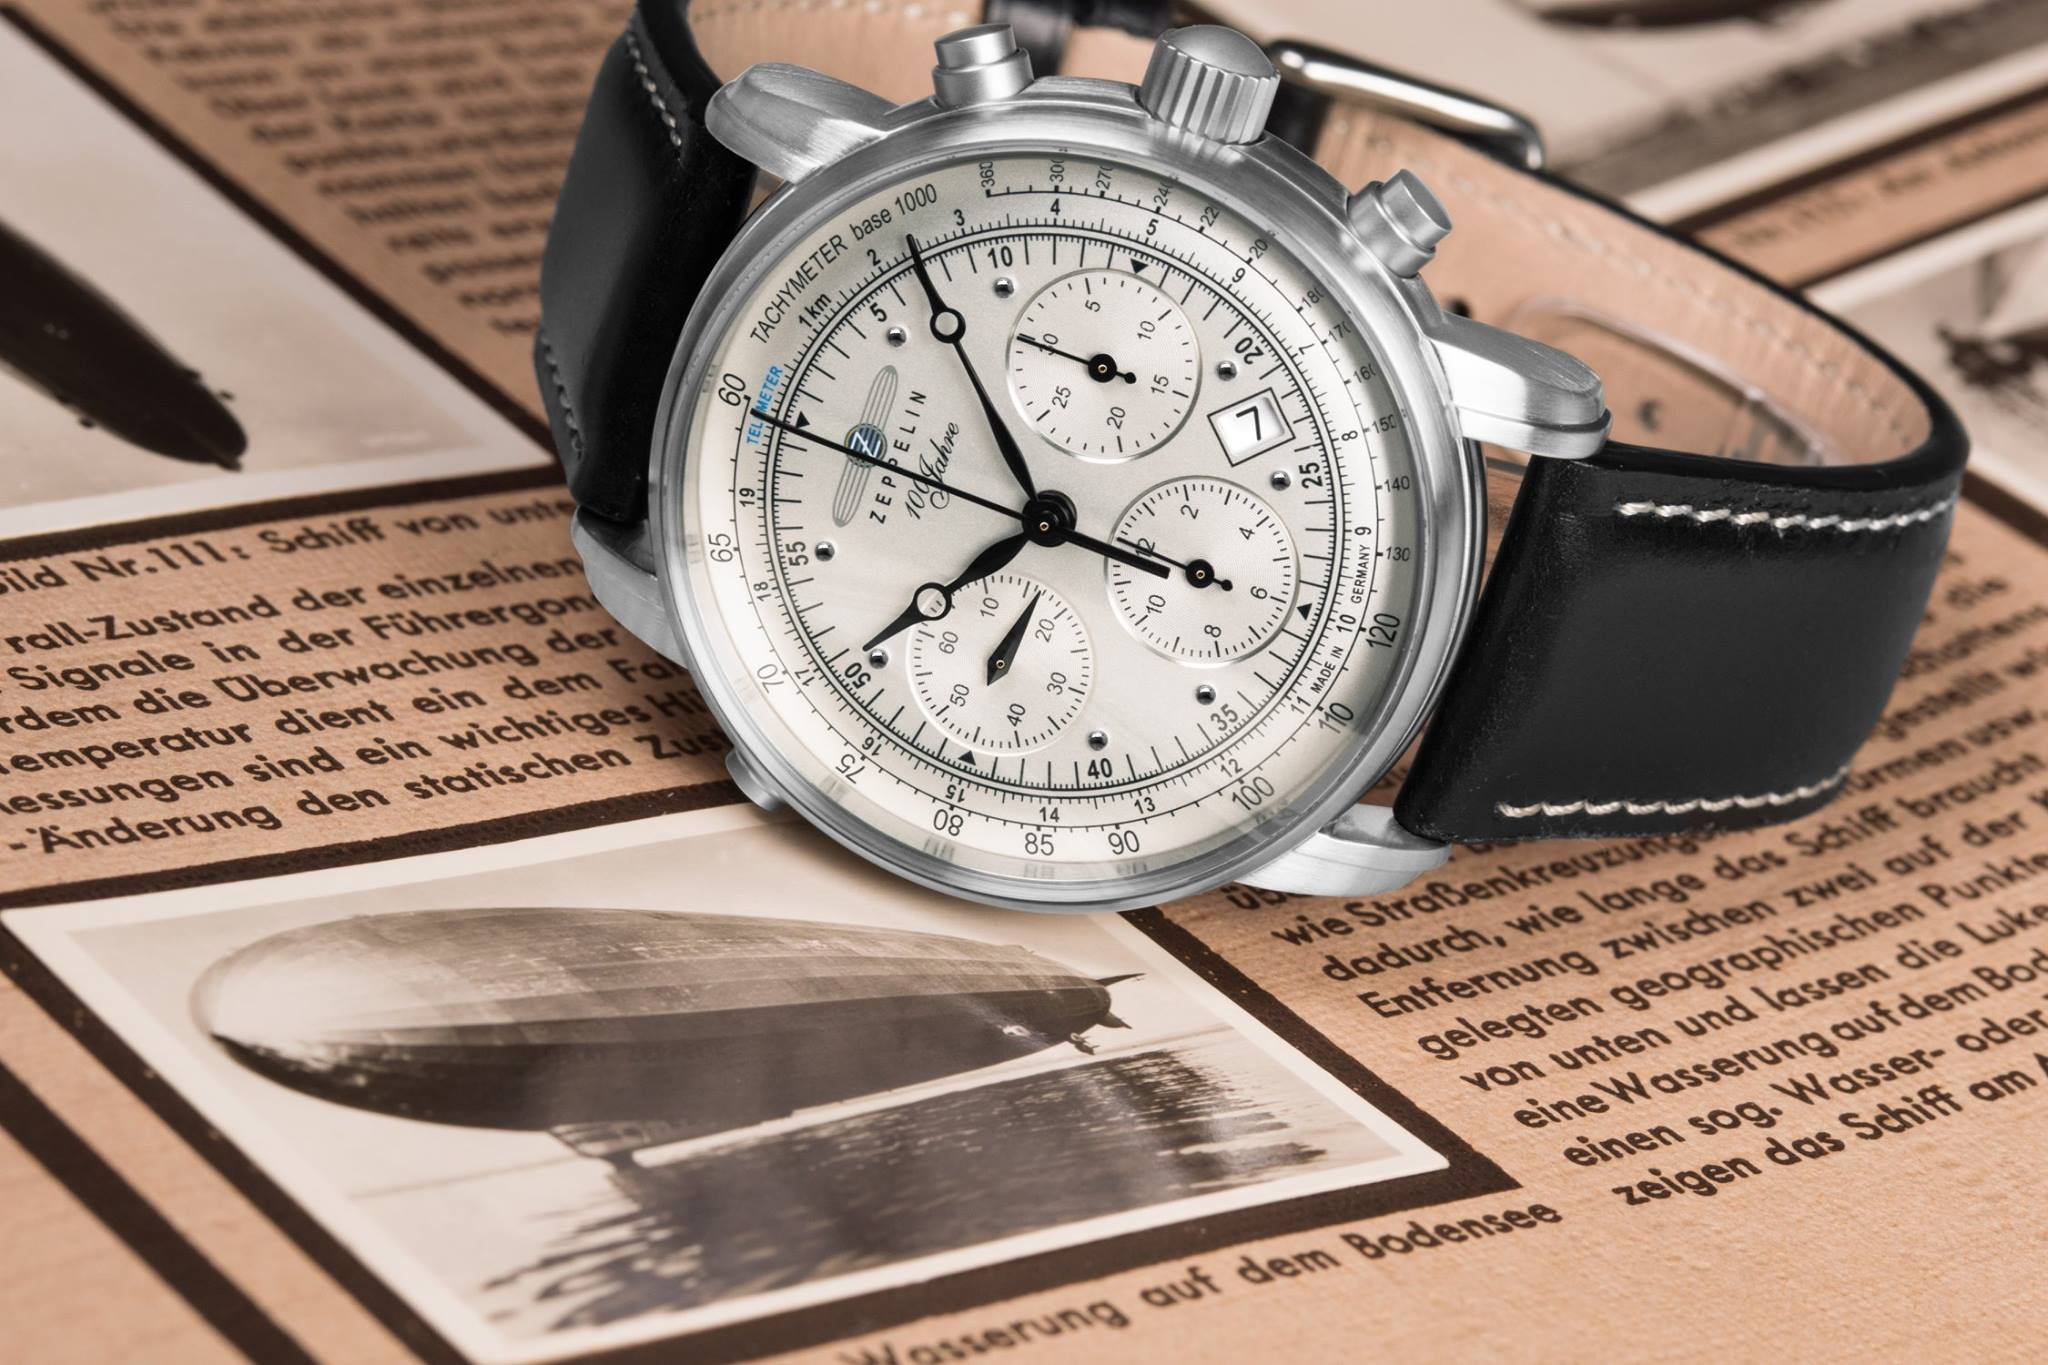 Zeppelin Watches: A German Brand Inspired By Vintage Airships